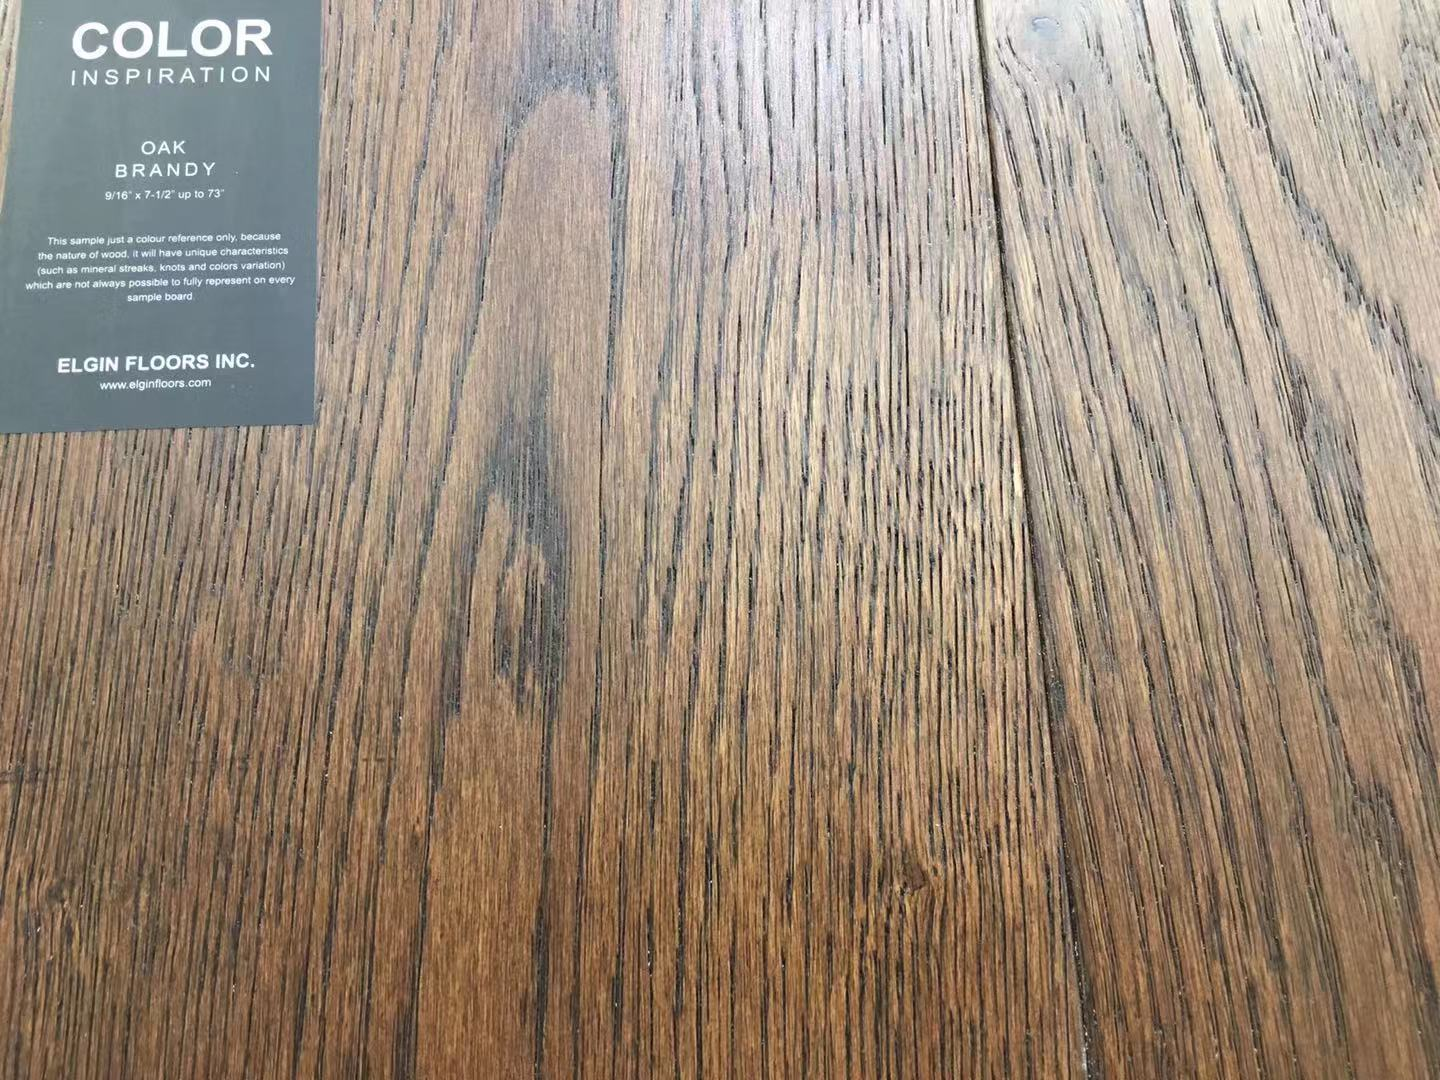 "SPX ORDER 1-2DAYS ENGINEERED HARDWOOD 7-1/2"" WIDTH 2MM TOP LAYER  OAK BRANDY $4.26/SF 23.33SF/BOX $99.49/BOX# - Home Idol Home Improvement Outlet"